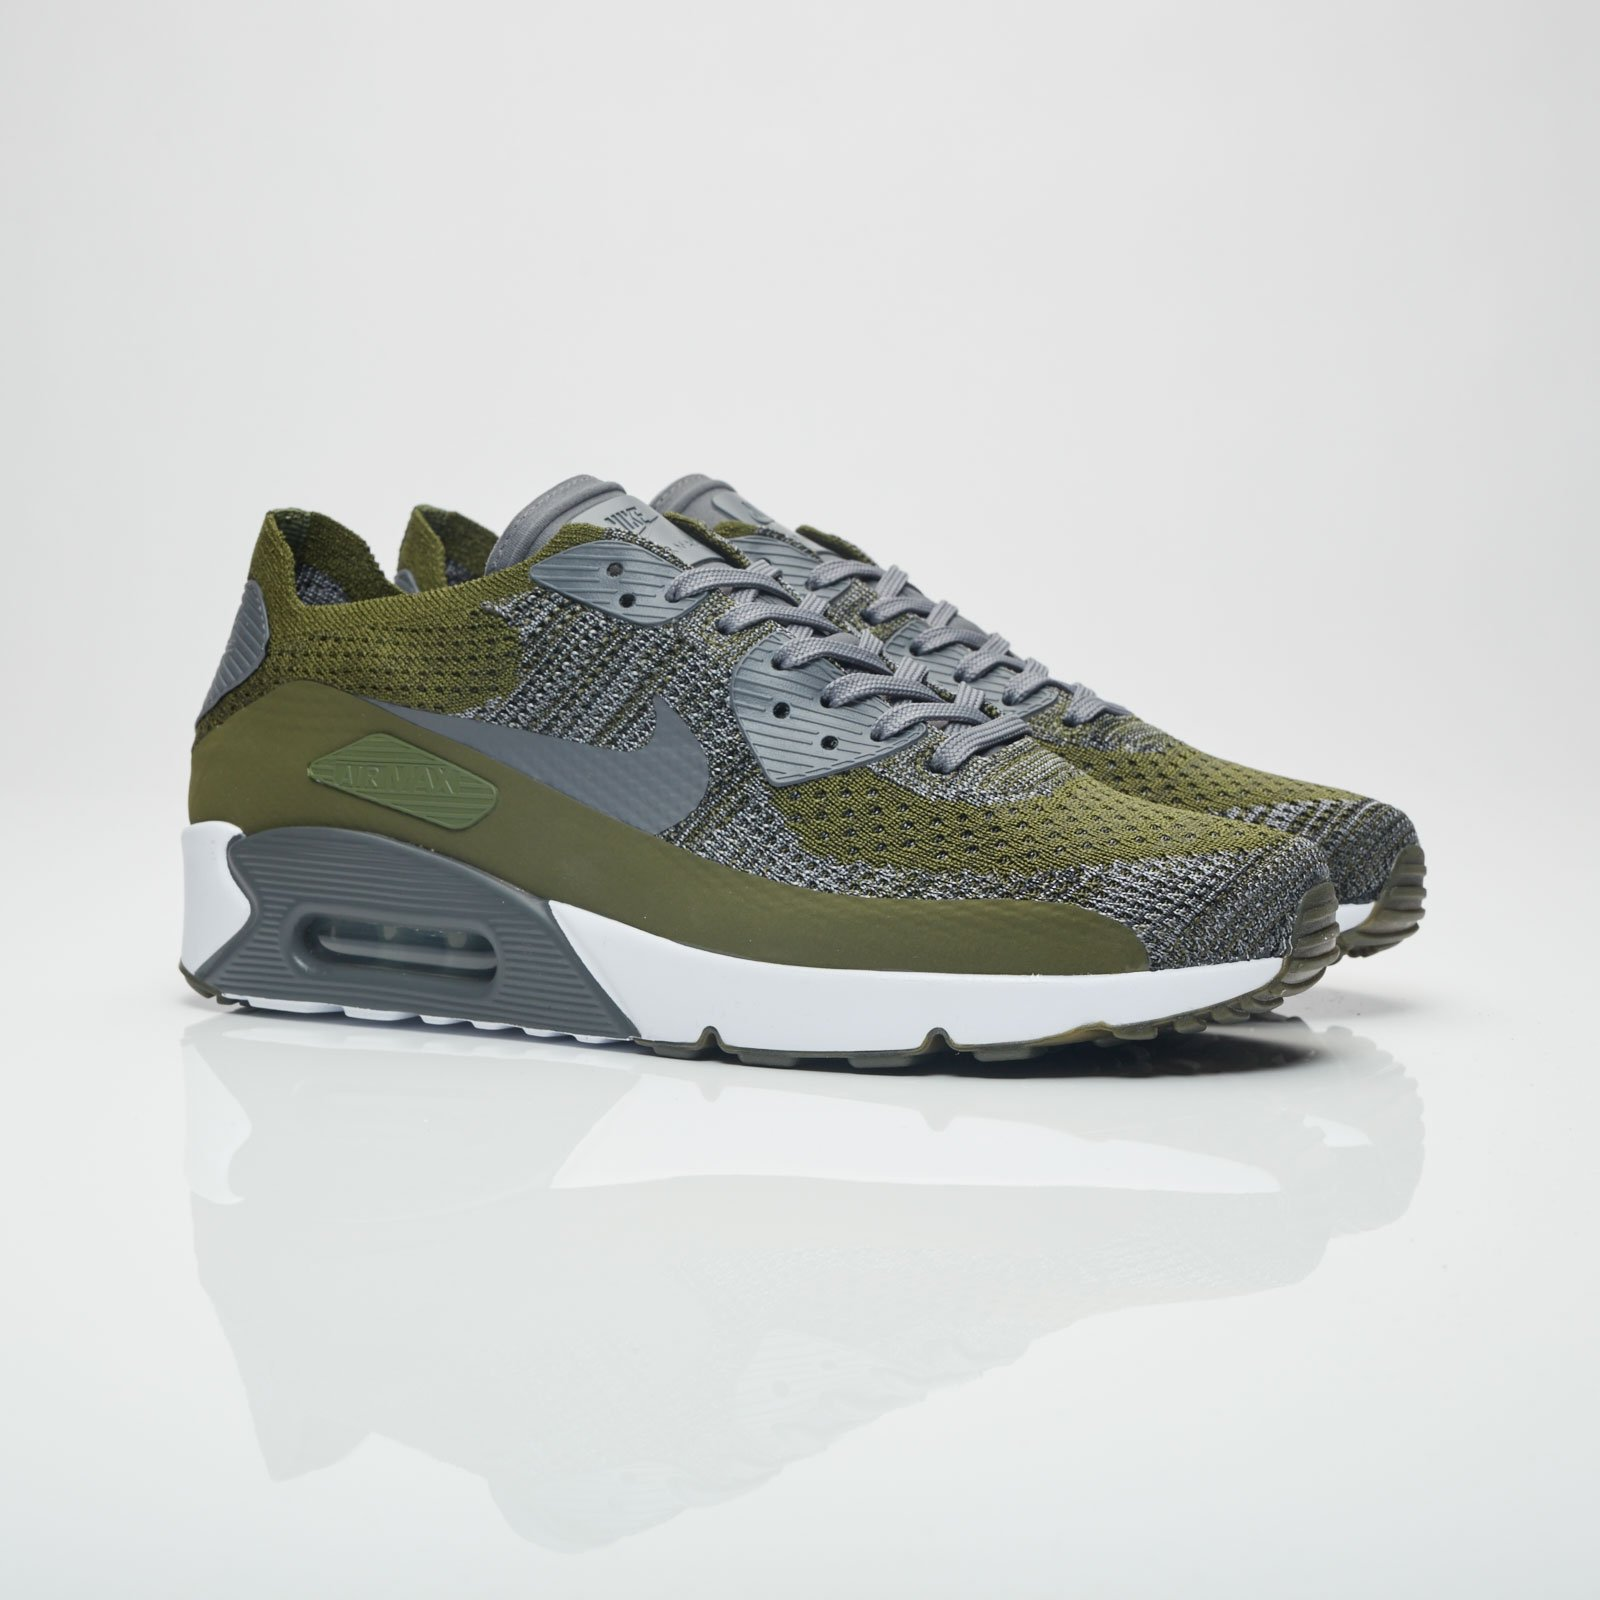 size 40 3a569 98a79 Nike Air Max 90 Ultra 2.0 Flyknit - 875943-300 ...